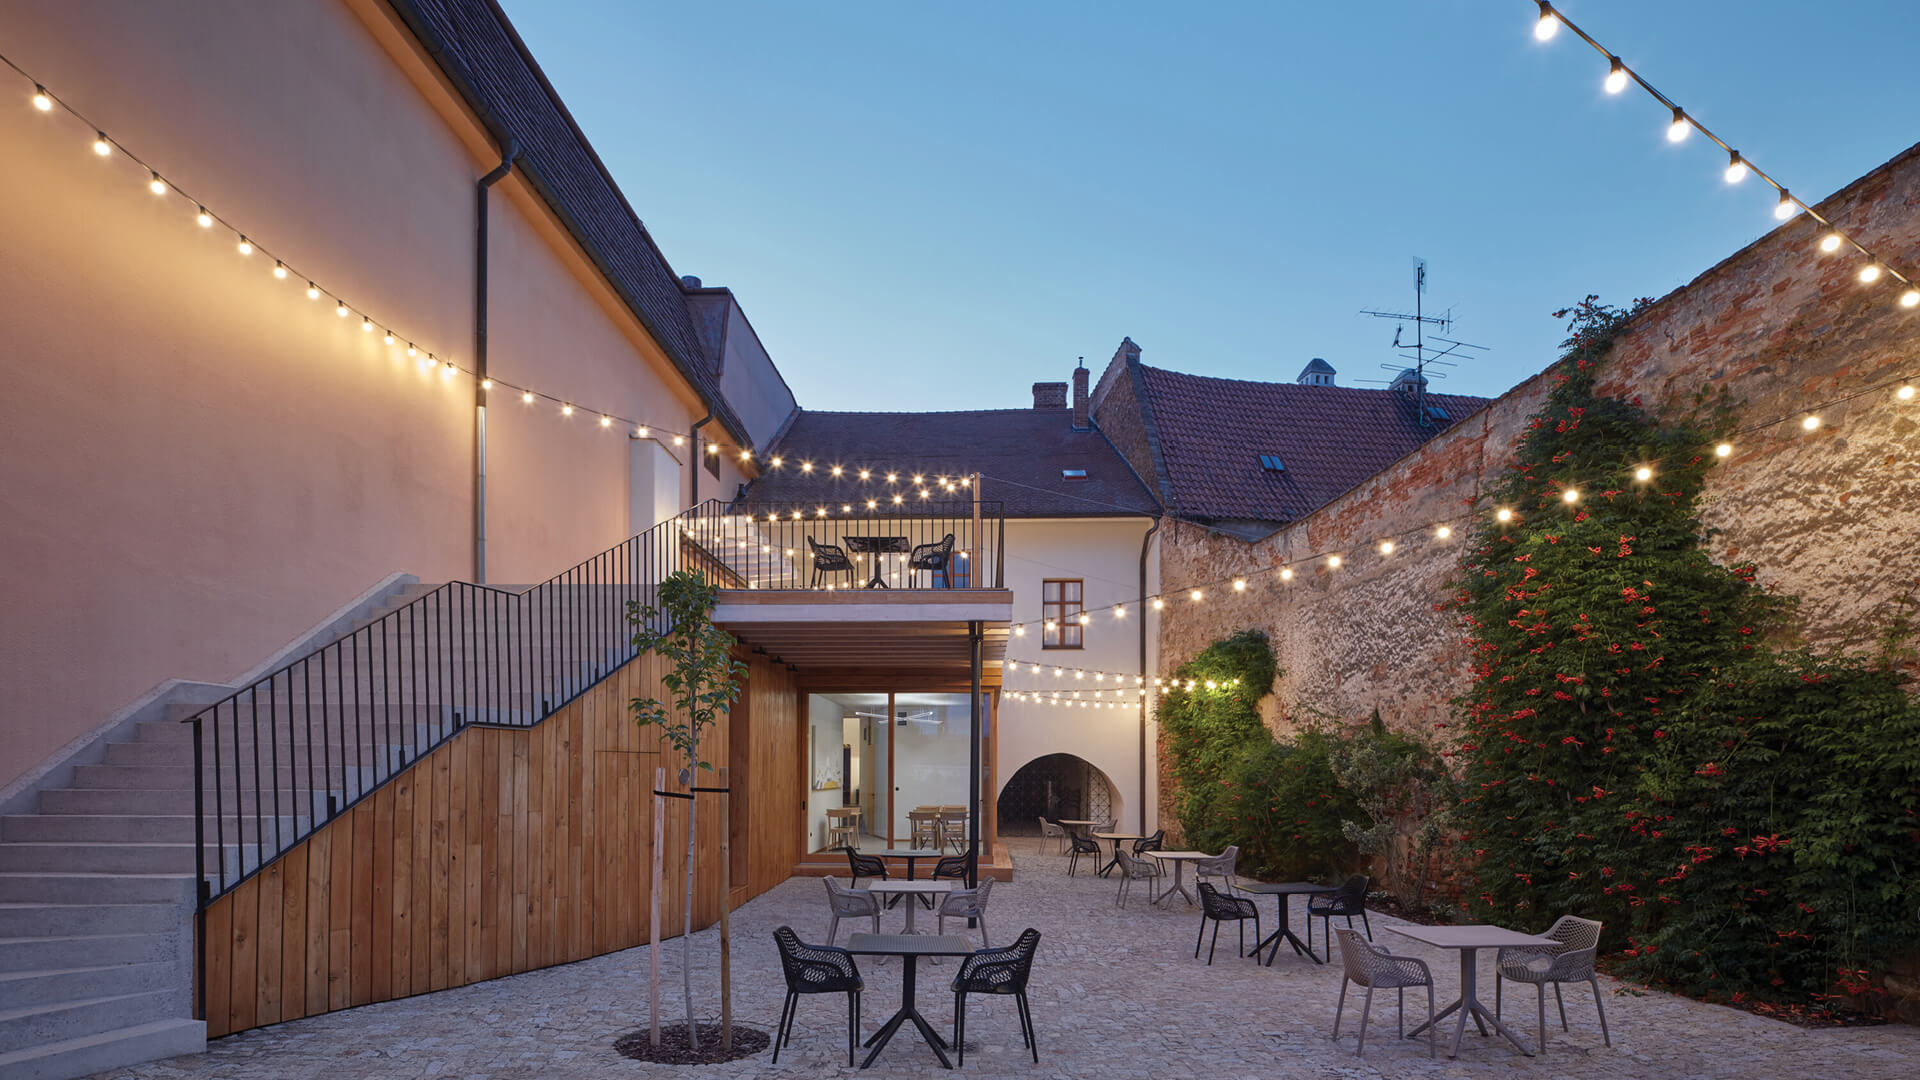 Winery Nesetril is an adaptively reused former renaissance townhouse |Winery Nesetril by ORA | STIRworld